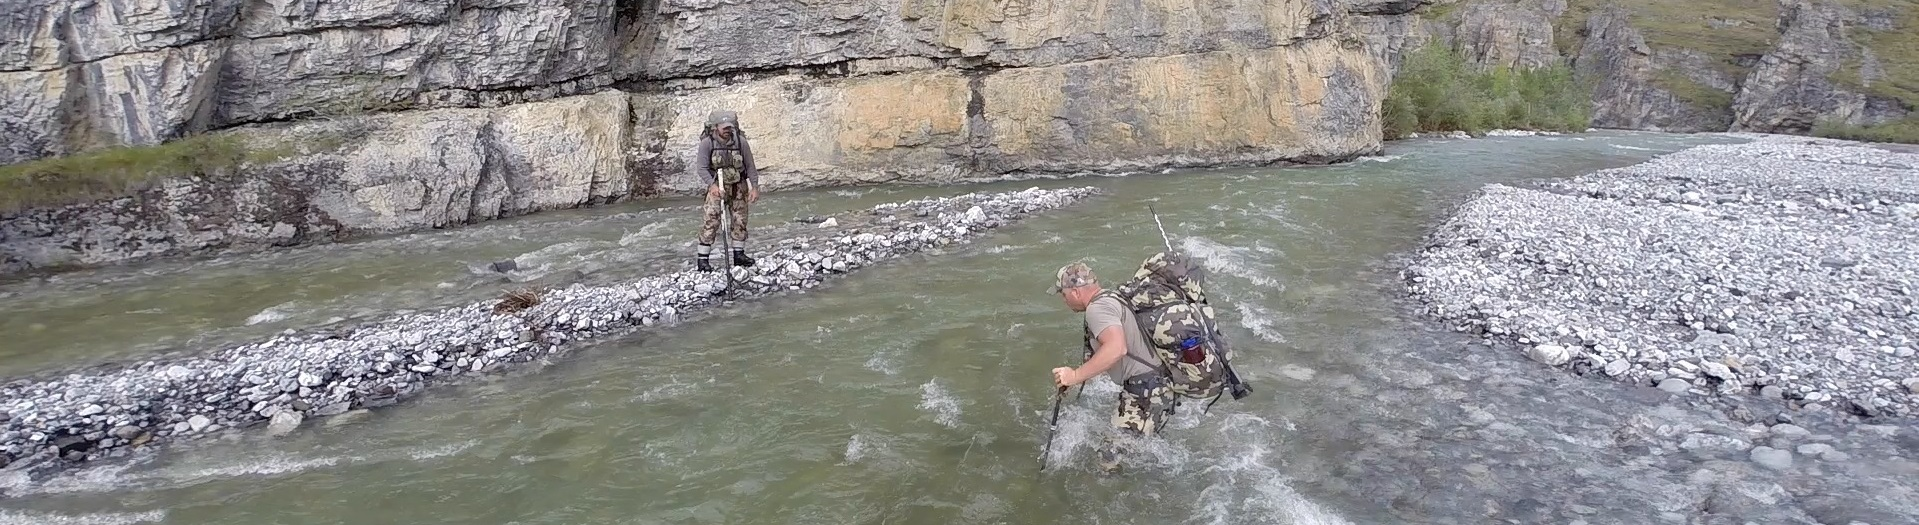 If your butt doesn't get wet, it's not too deep. A good set of gaiters are worth their weight in gold.